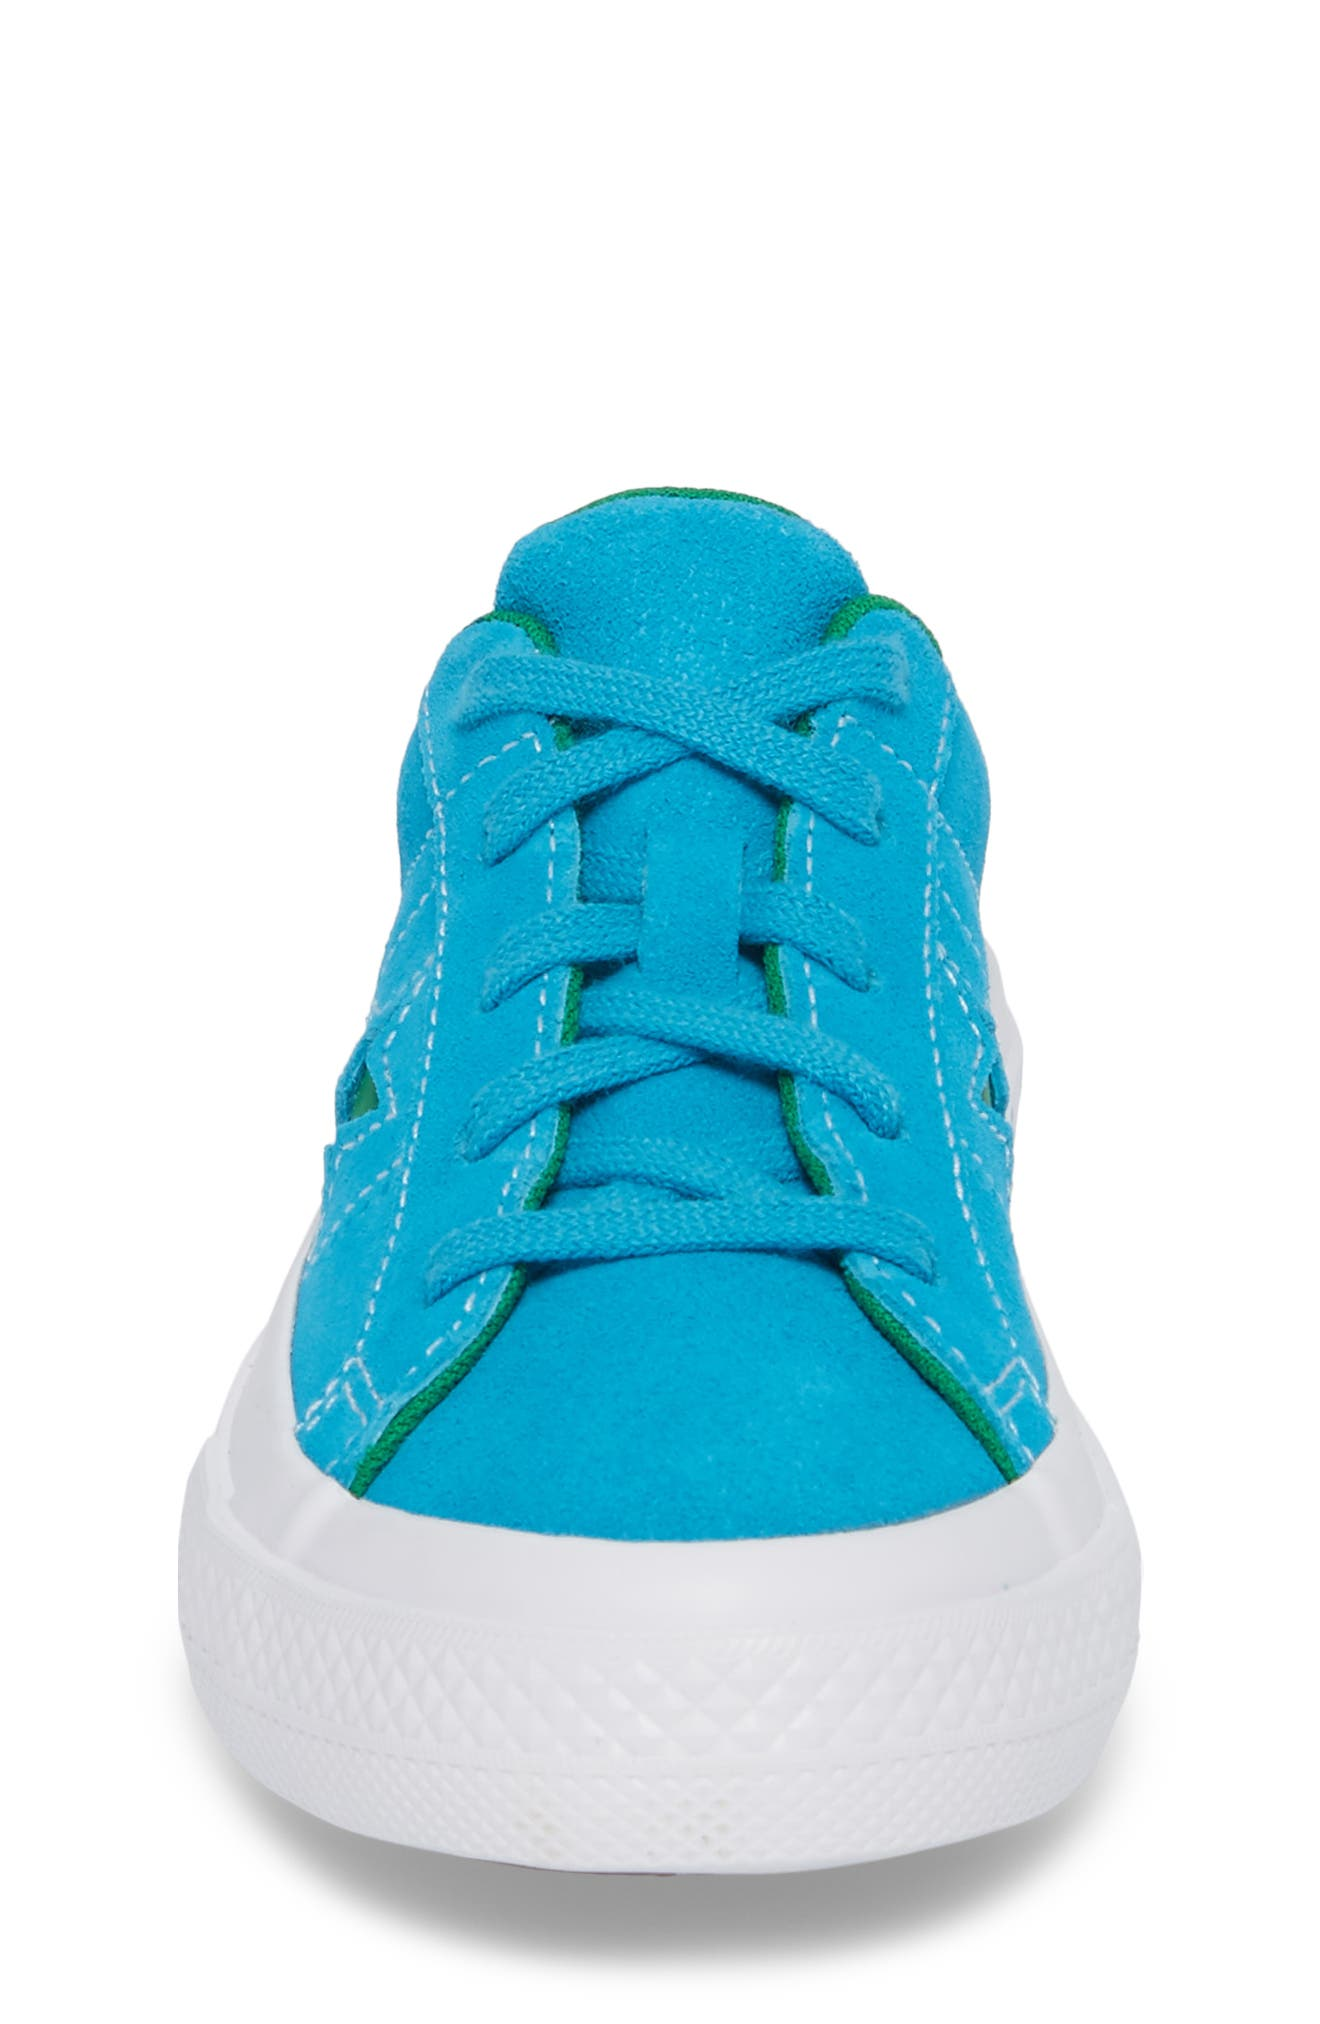 Chuck Taylor<sup>®</sup> All Star<sup>®</sup> One Star Leather Platform Sneaker,                             Alternate thumbnail 4, color,                             486